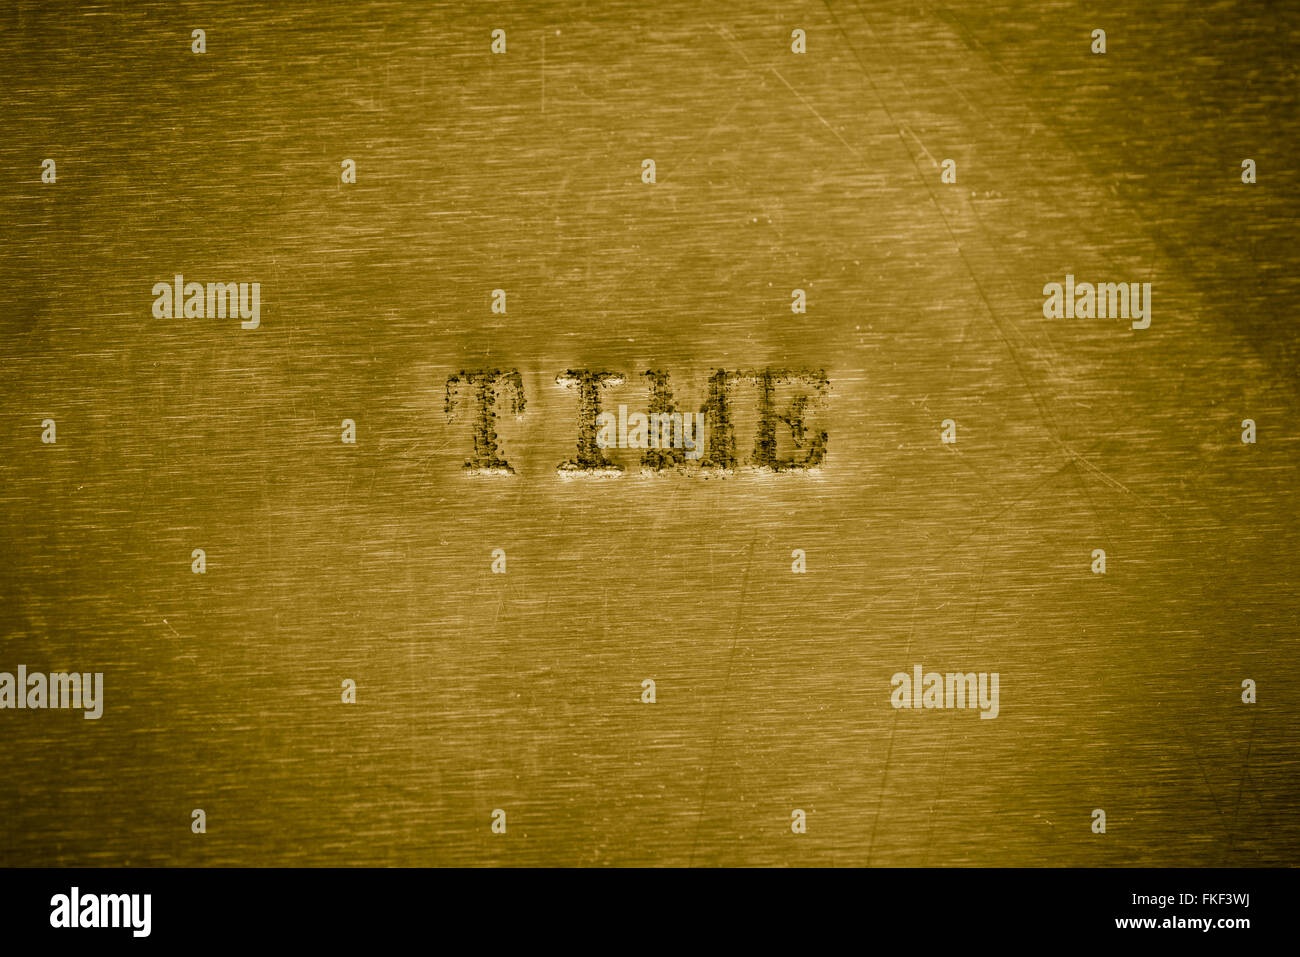 word time printed on  golden metallic background texture - Stock Image